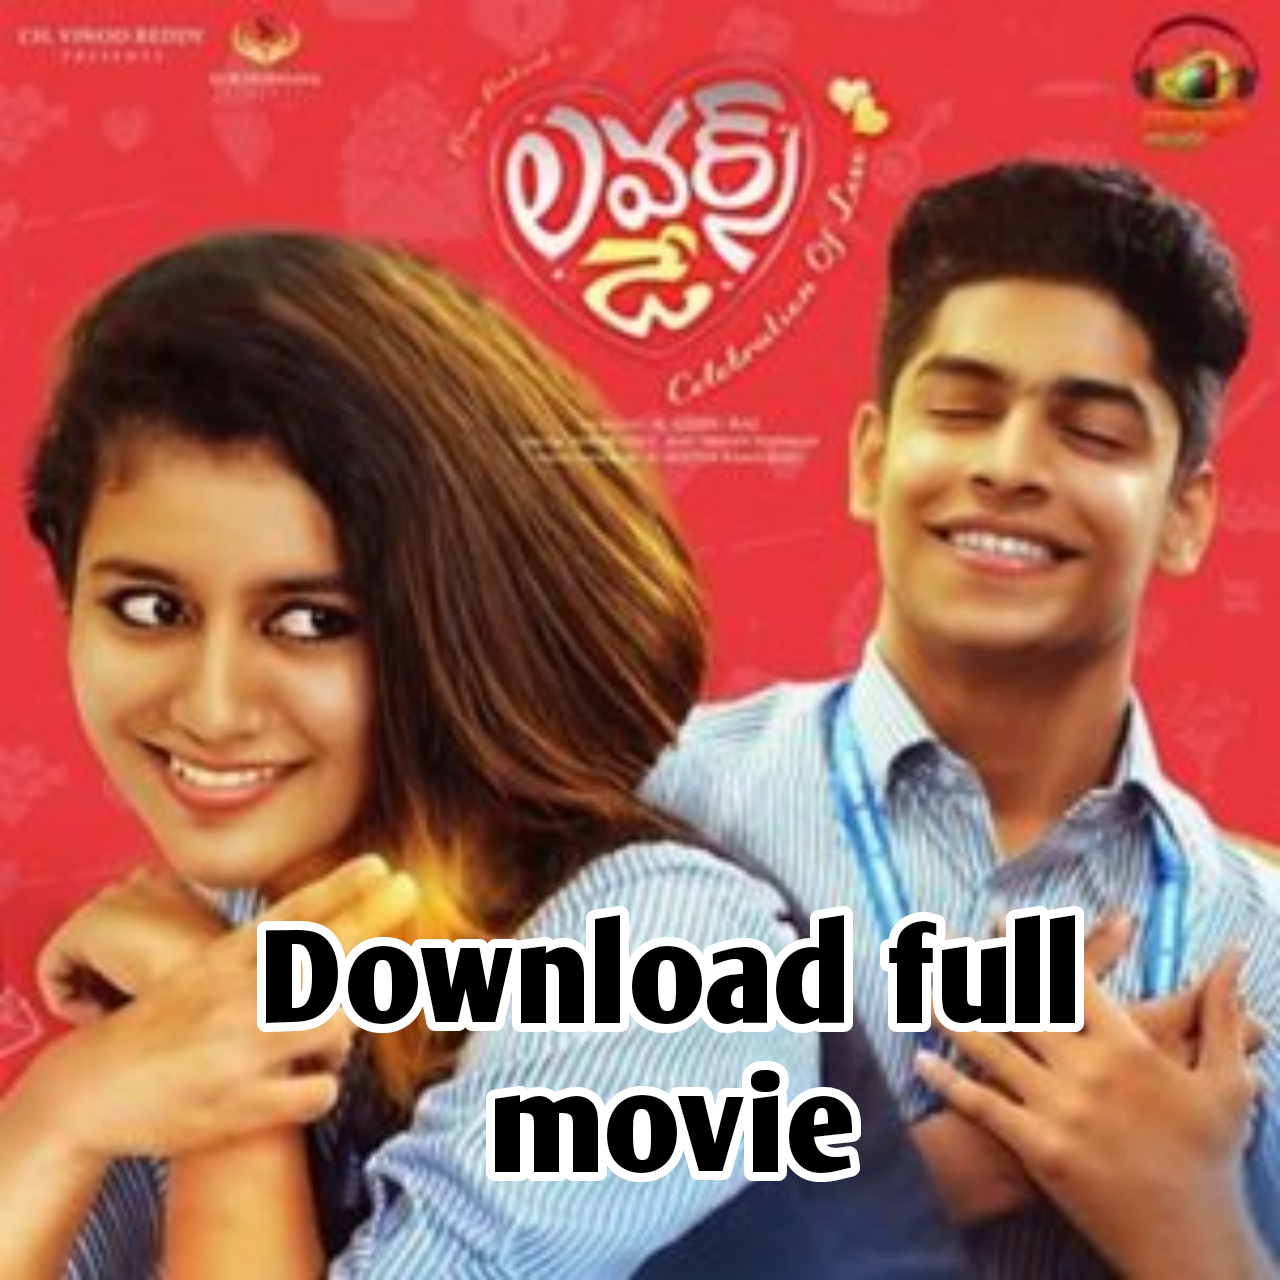 Lovers Day Telugu Full Movie Download 2019 720p Artofit